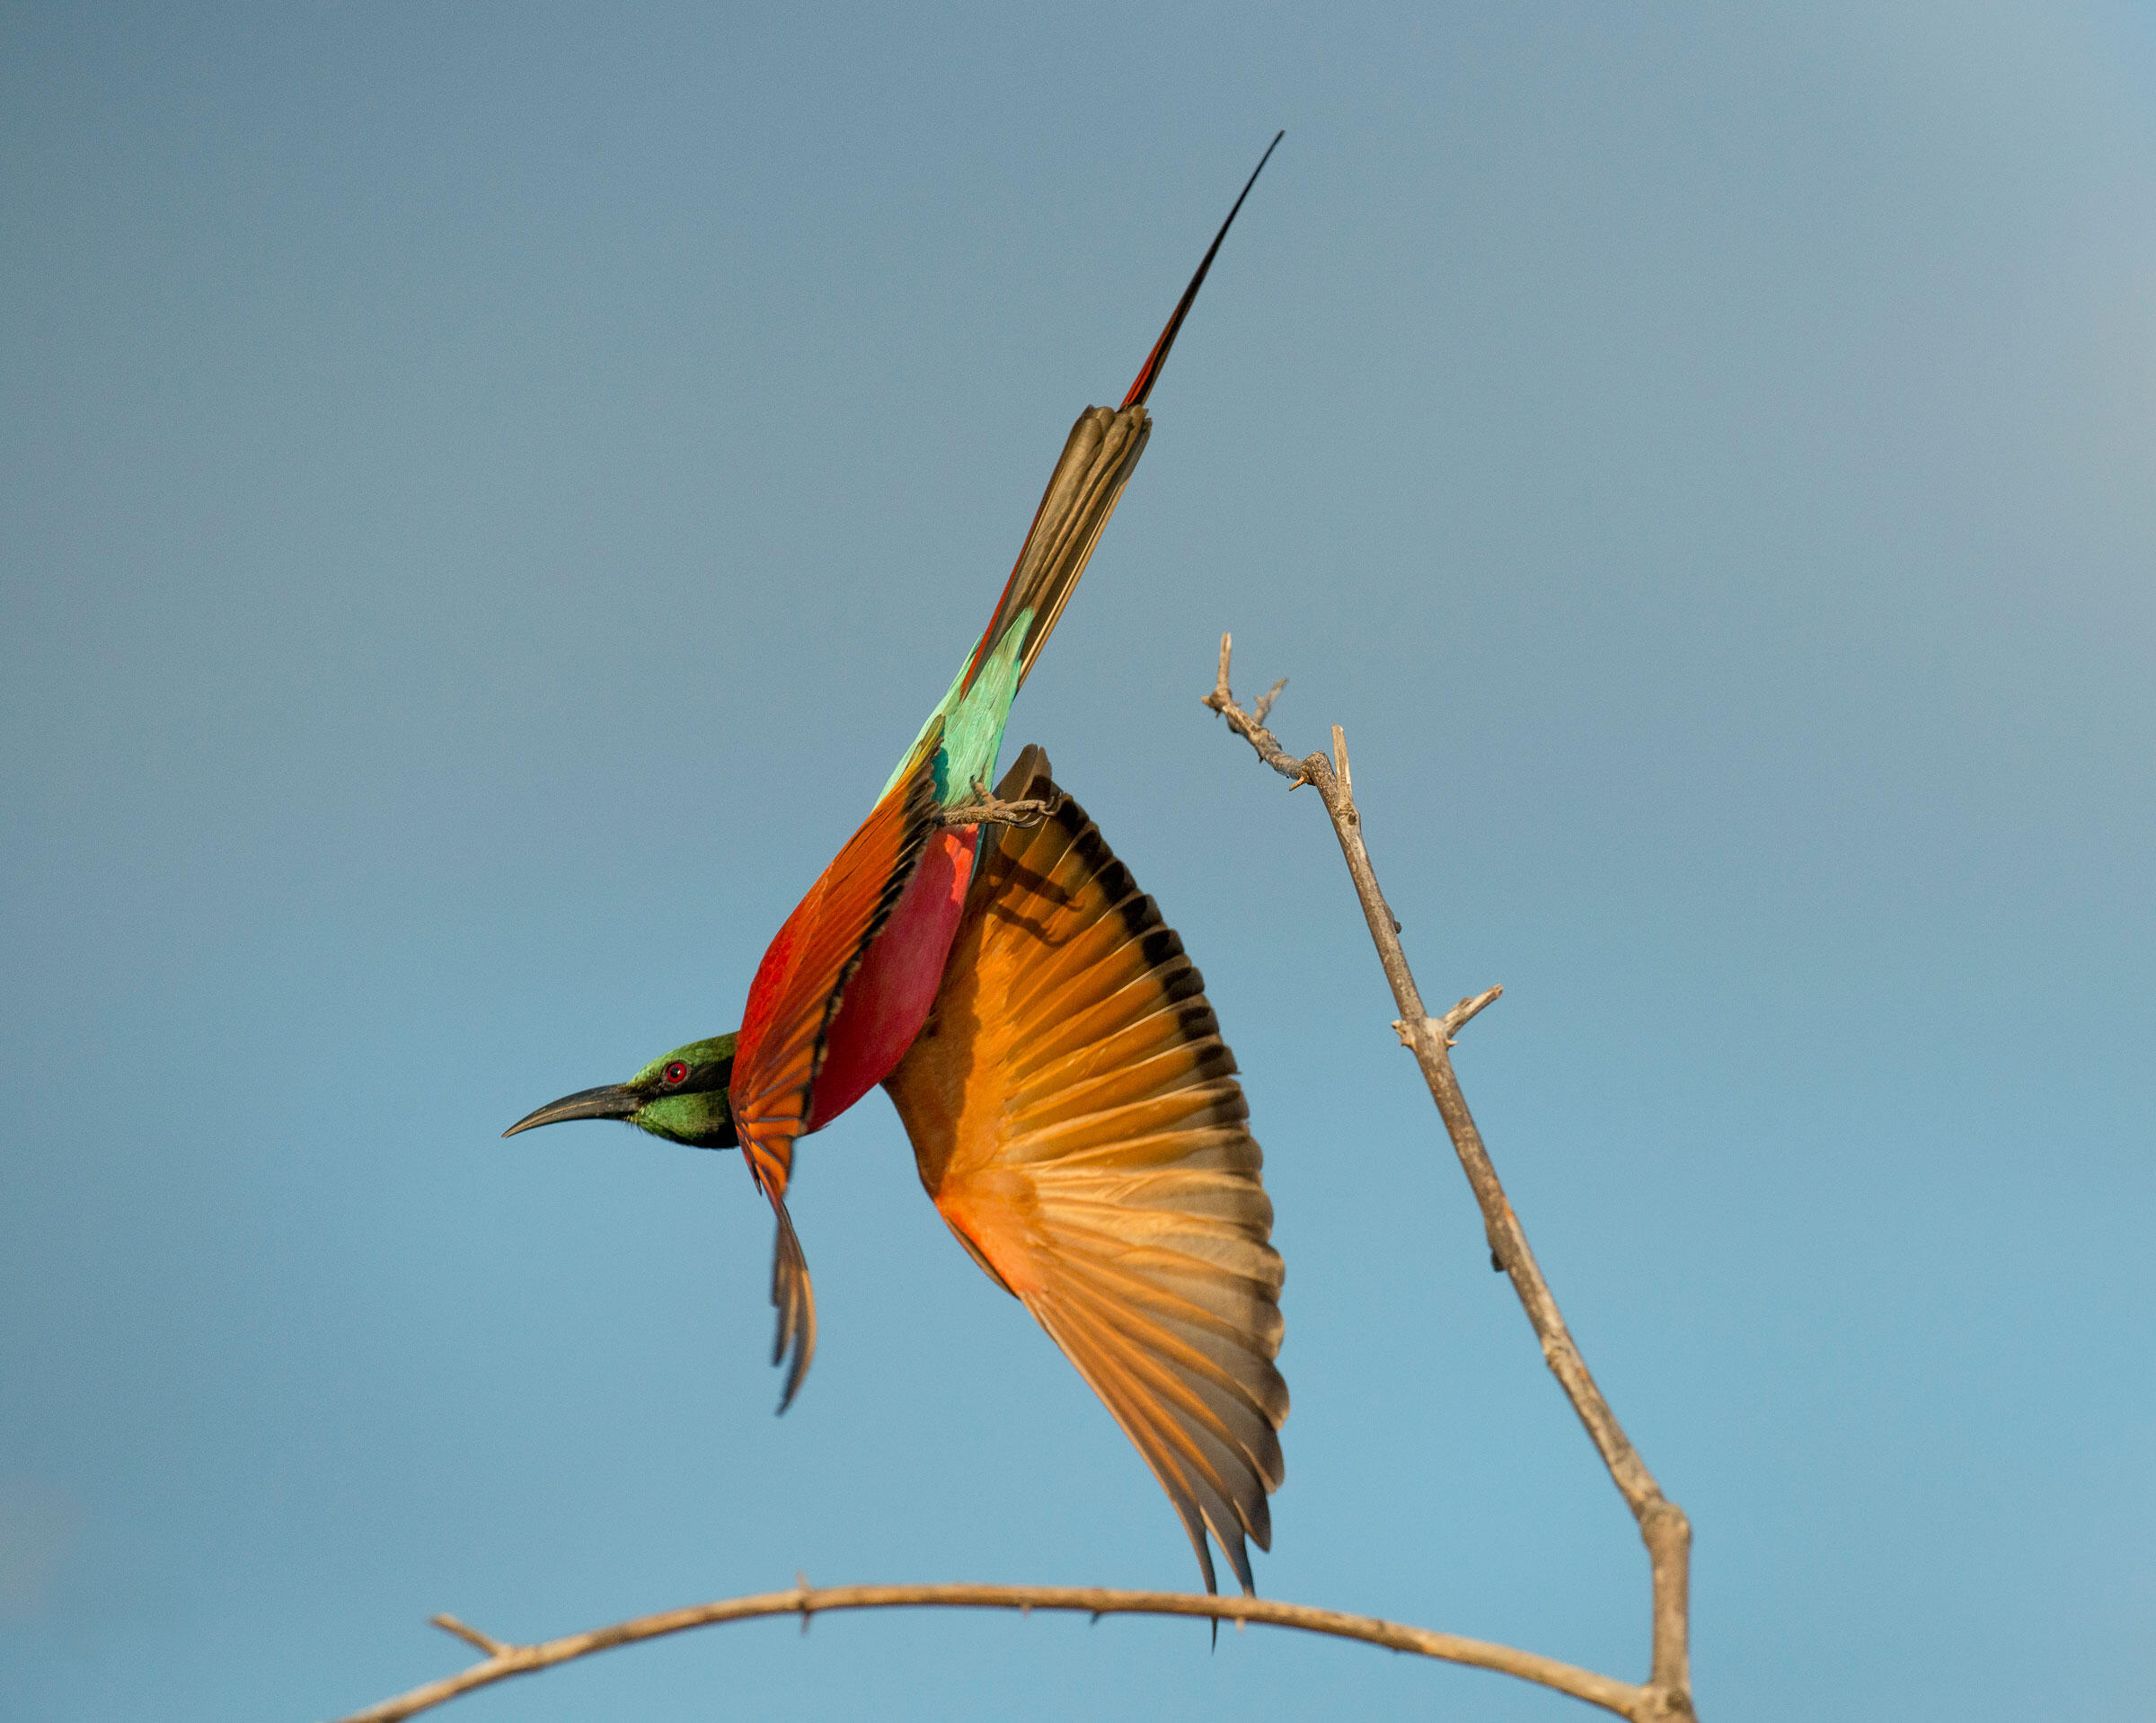 The Northern Carmine Bee-eater is a strong and graceful flier. Robert J. Ross